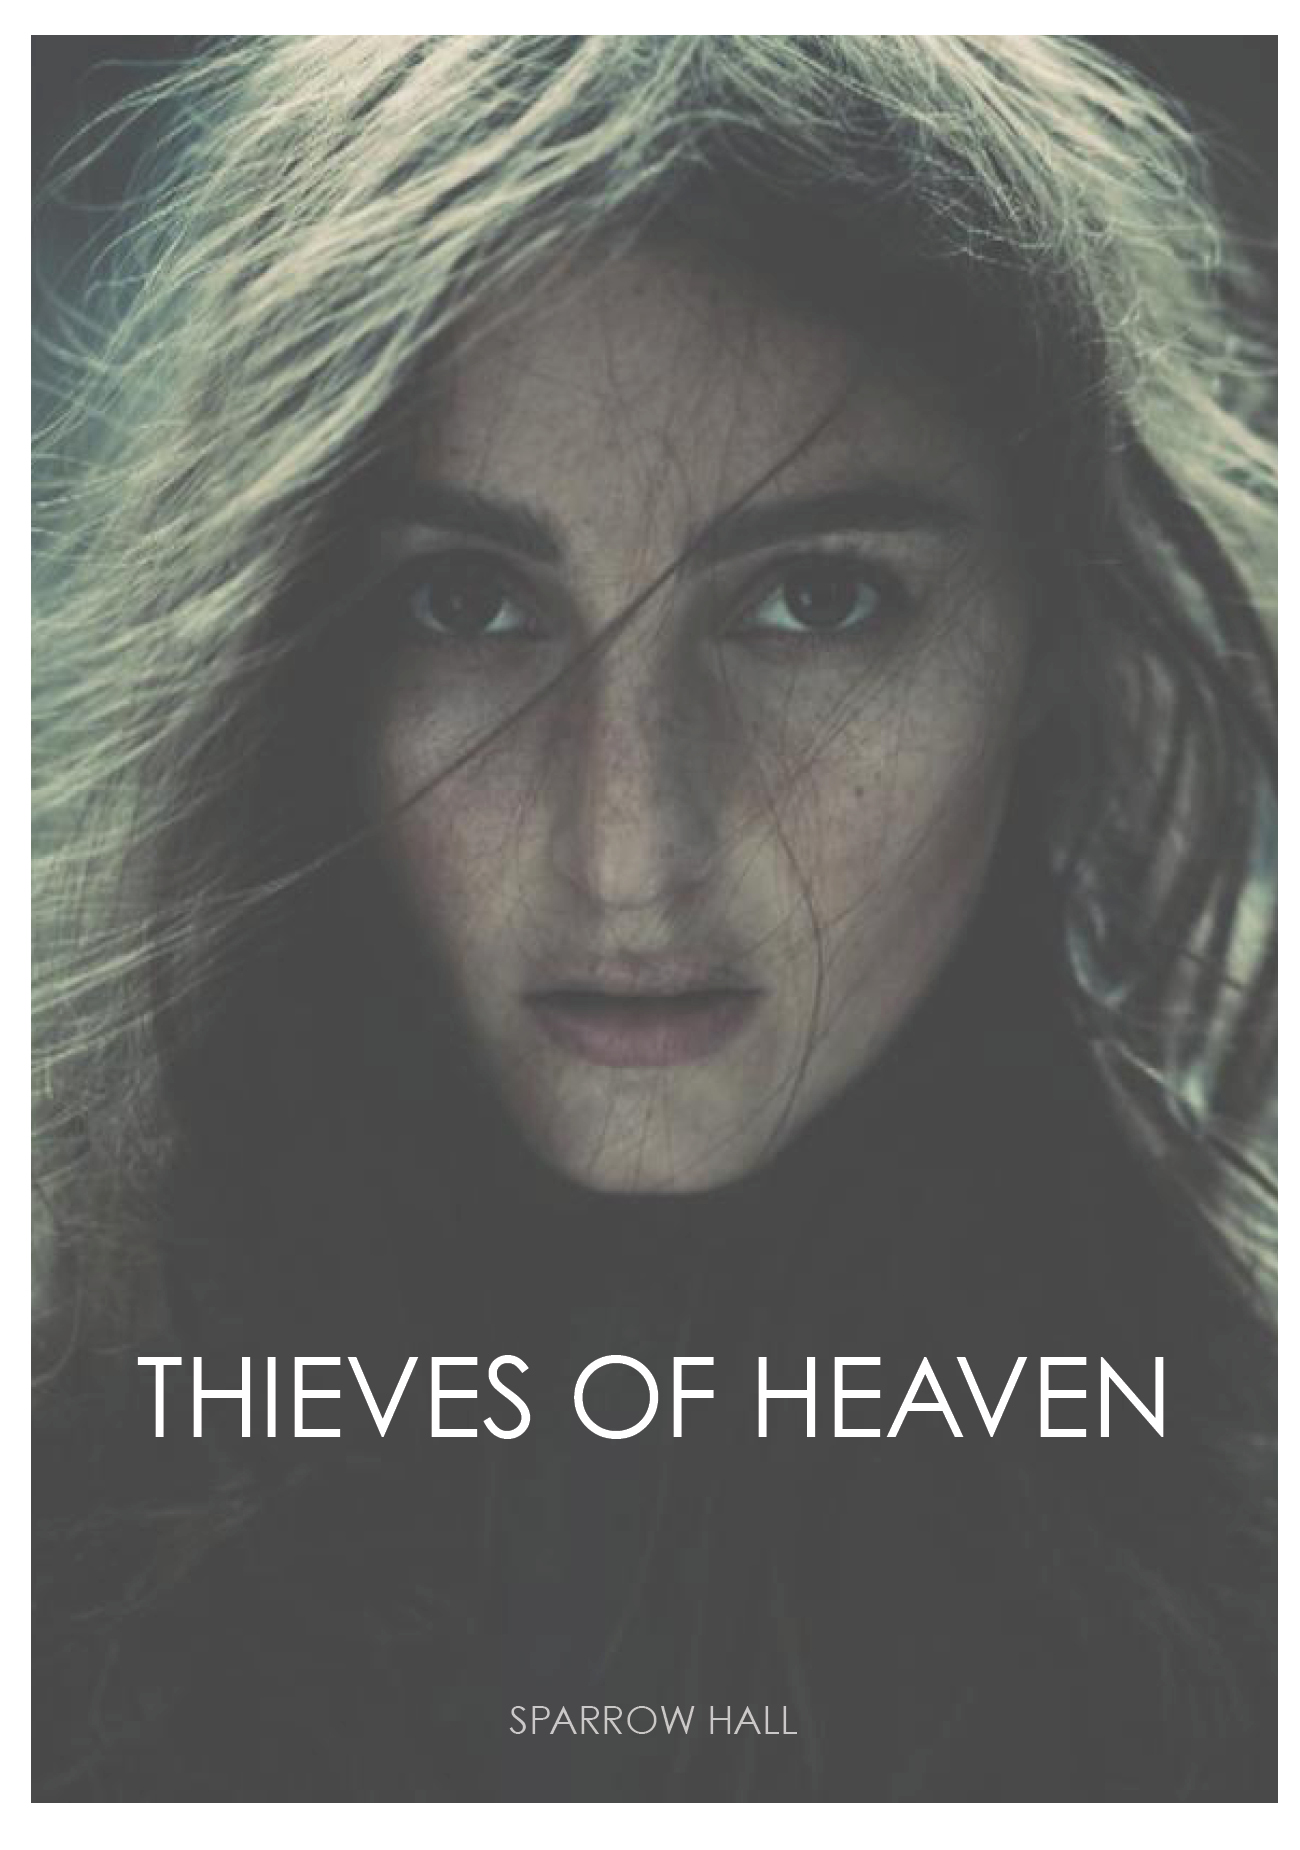 Thieves of Heaven by Sparrow Hall